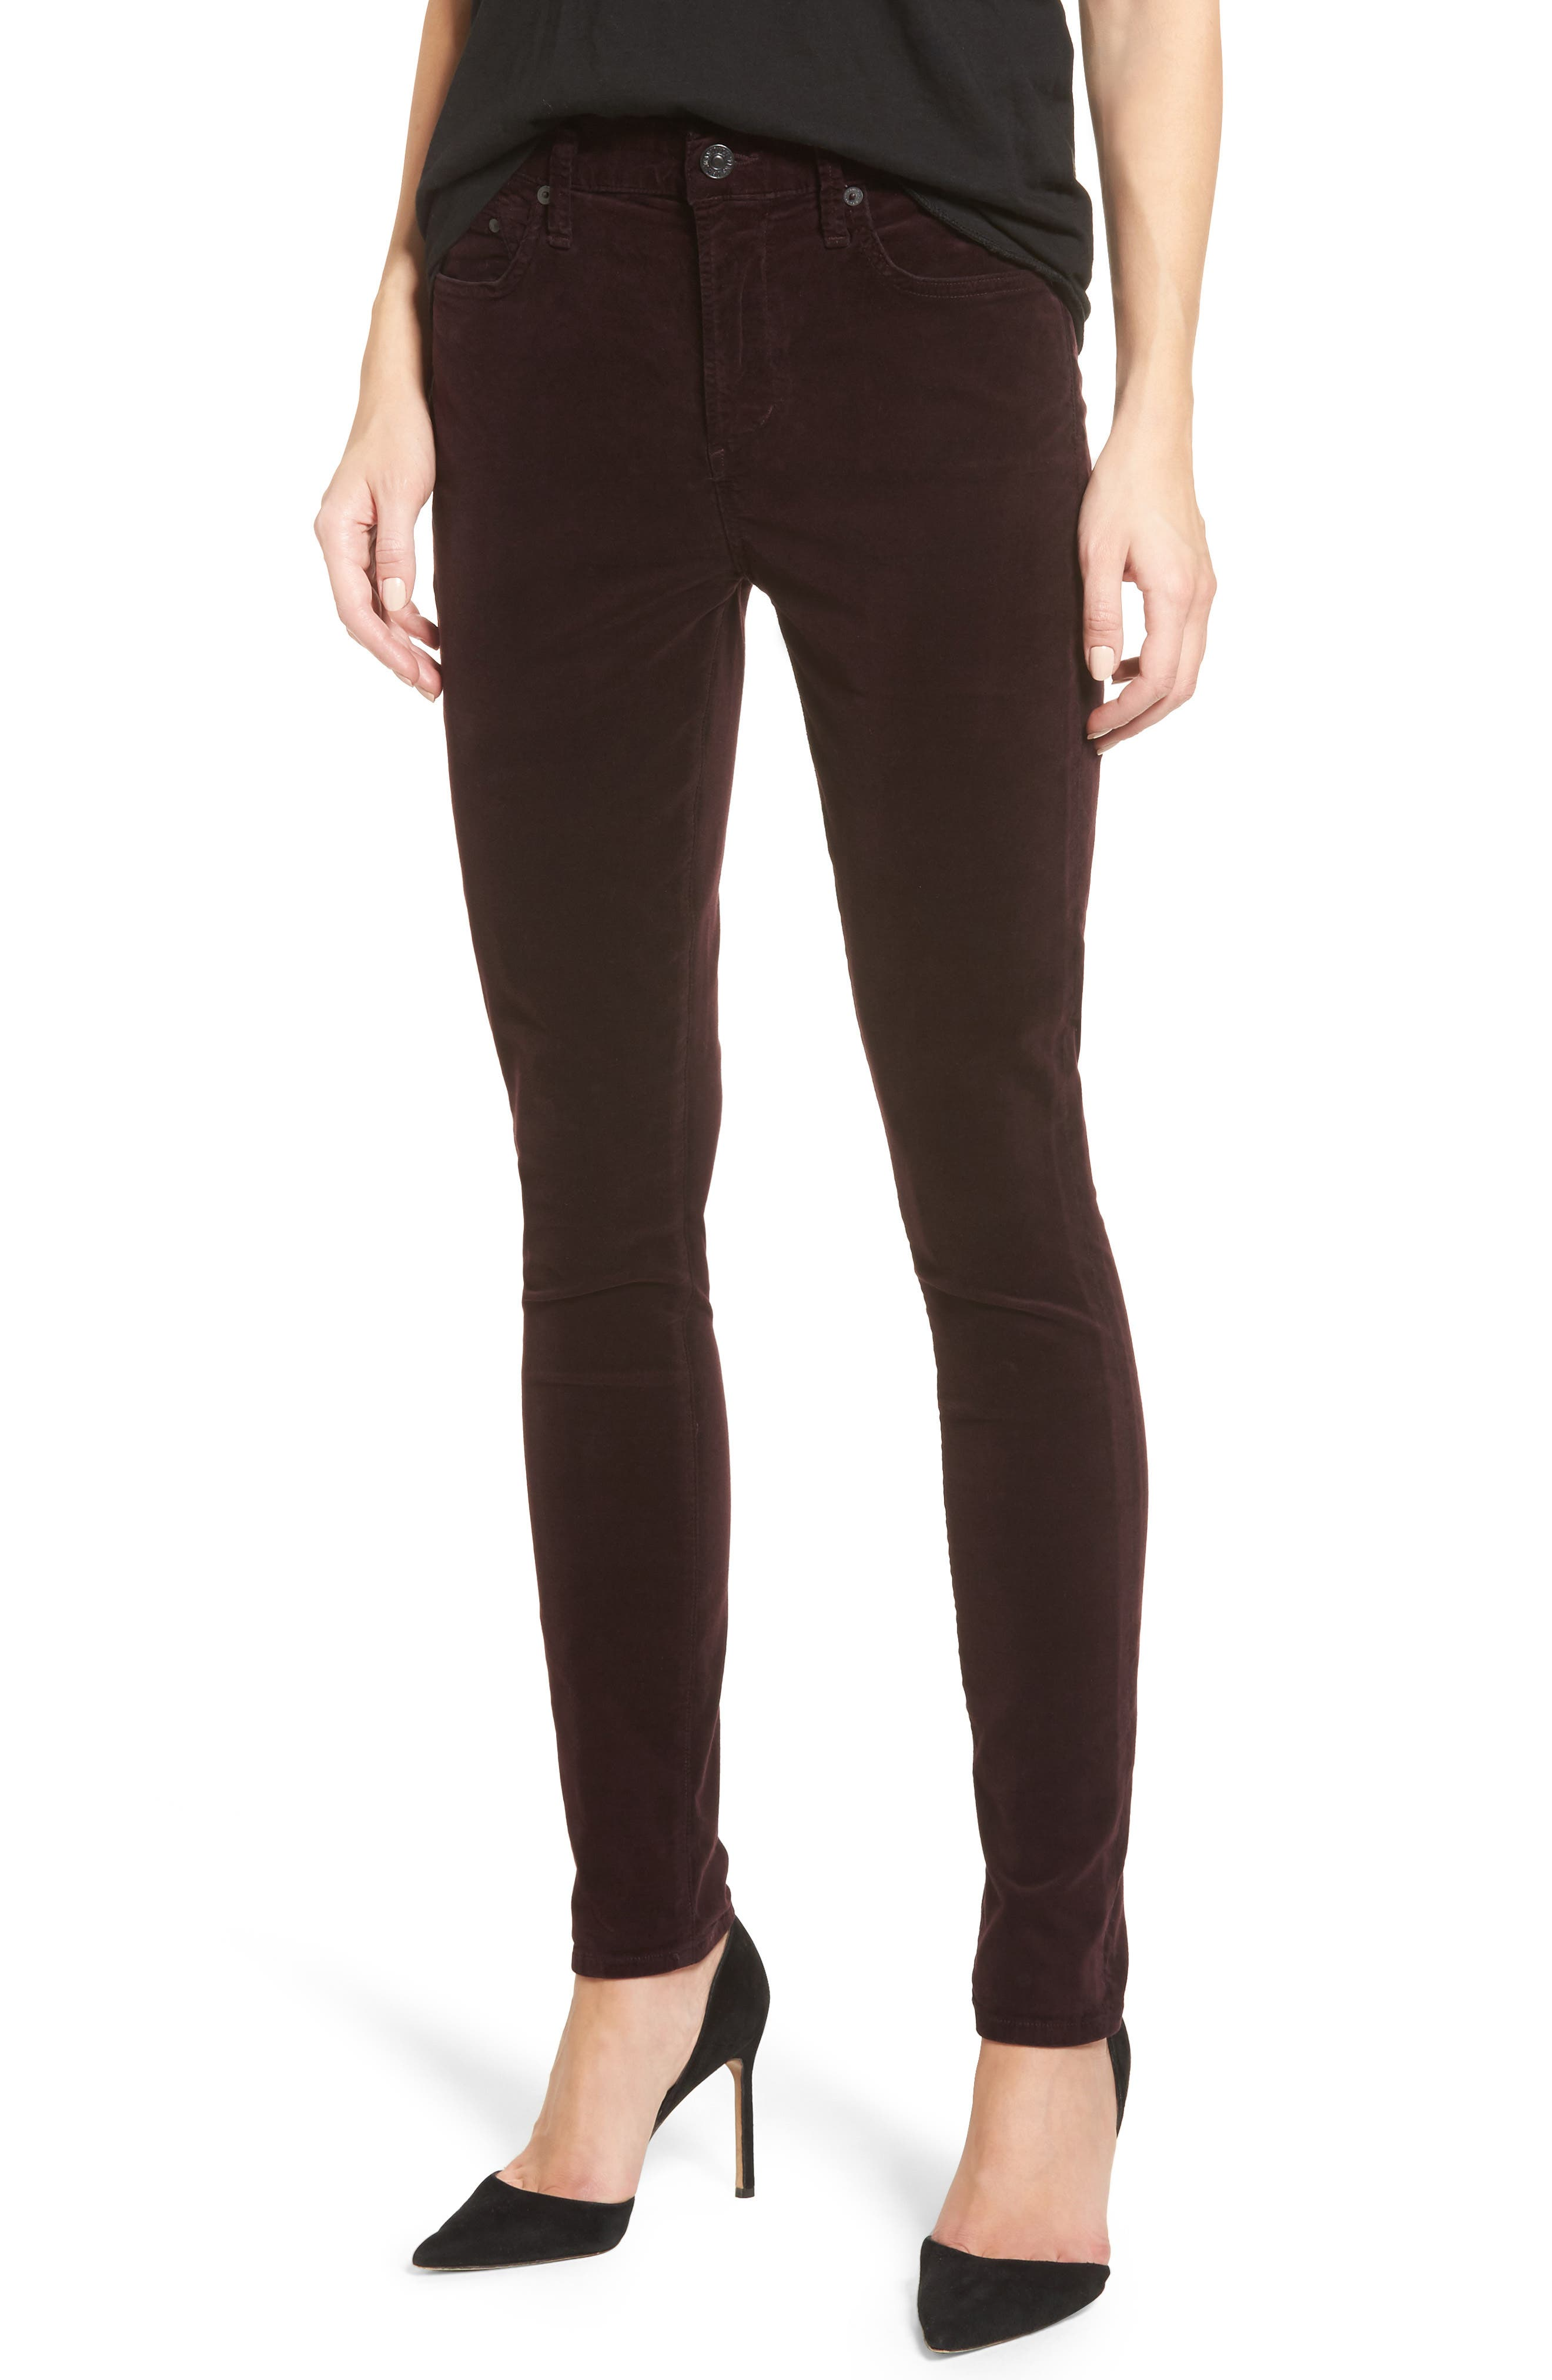 Main Image - Citizens of Humanity Rocket High Waist Velveteen Skinny Pants